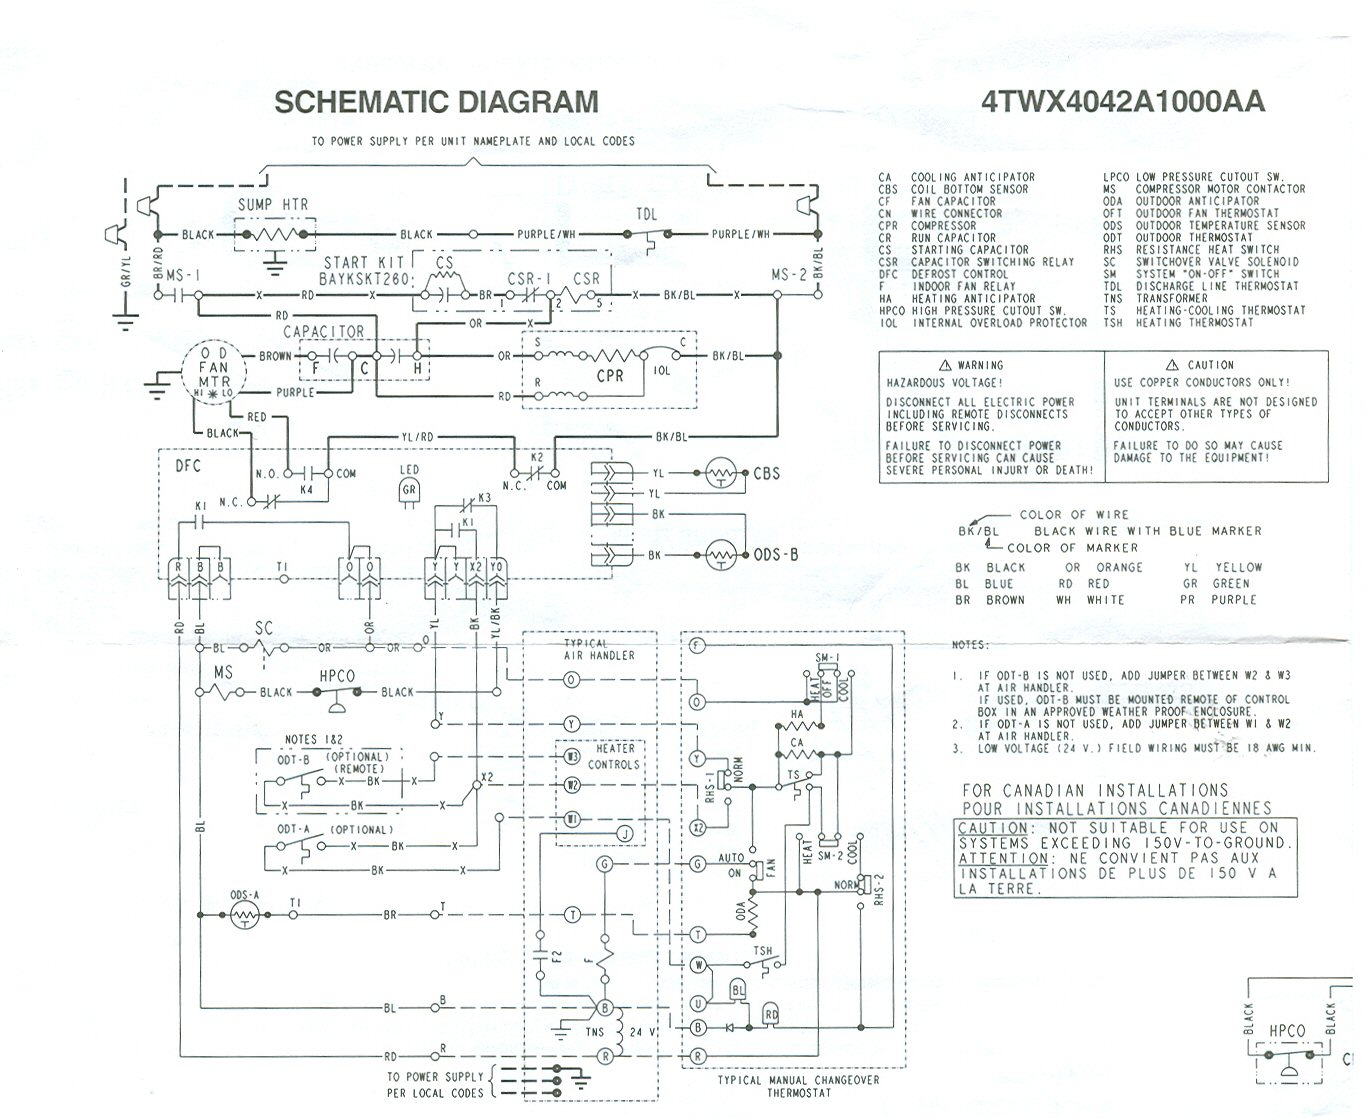 trane furnace wiring diagram download-trane wiring diagram ac diagrams  furnace inside 8-g  download  wiring diagram pictures detail: name: trane  furnace